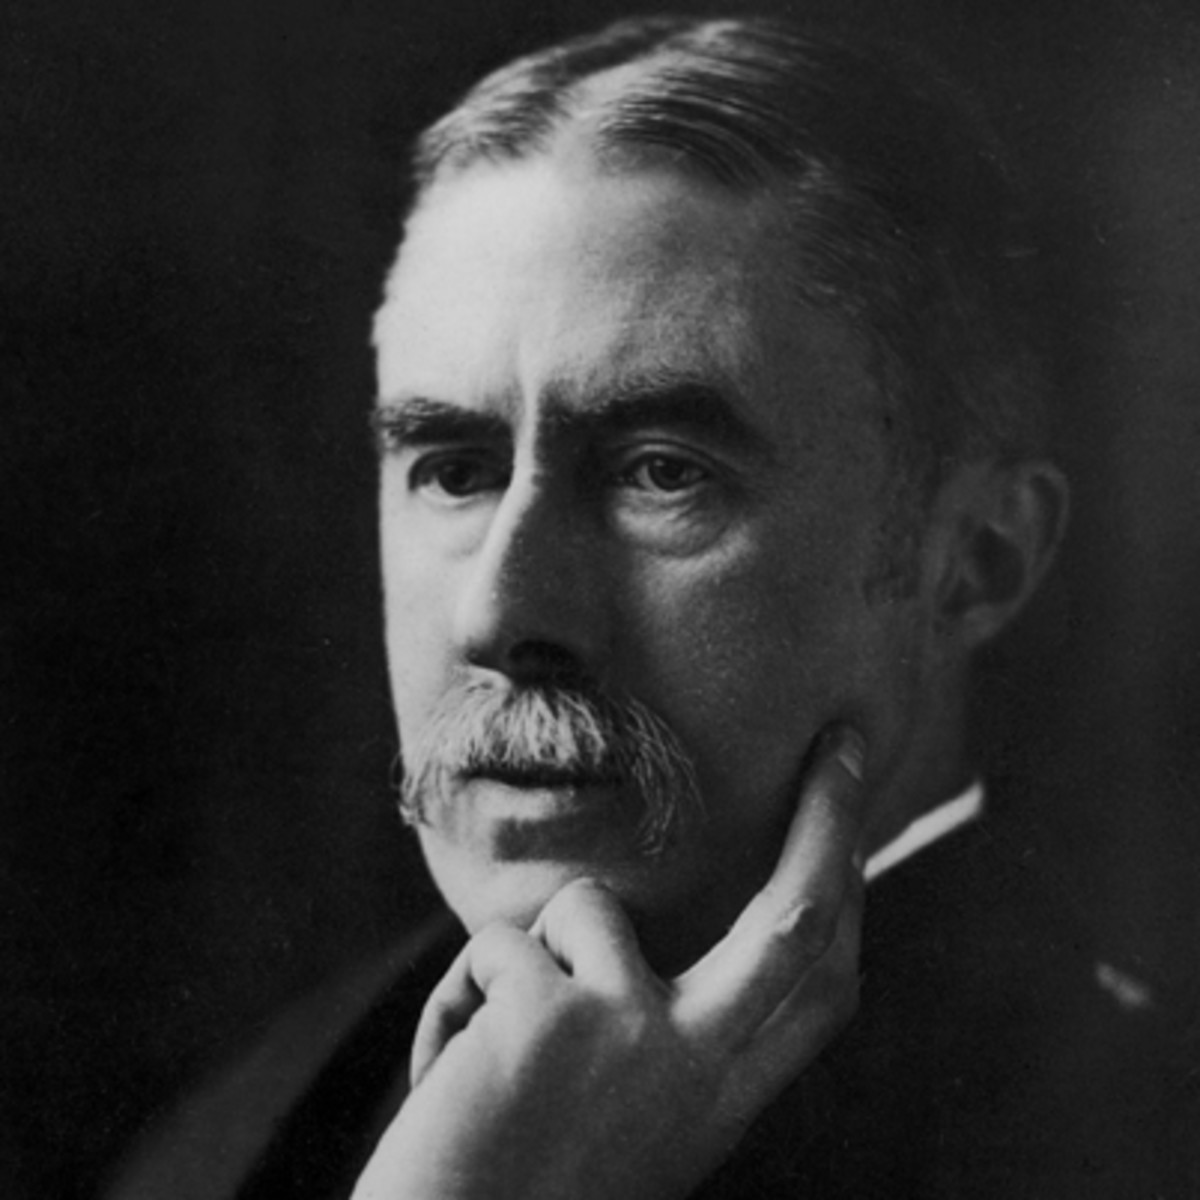 an analysis of the poetry of ae housman Living, learning, mistakes, wiser, love - analysis on ae housman´s poem when i was one- and - twenty.